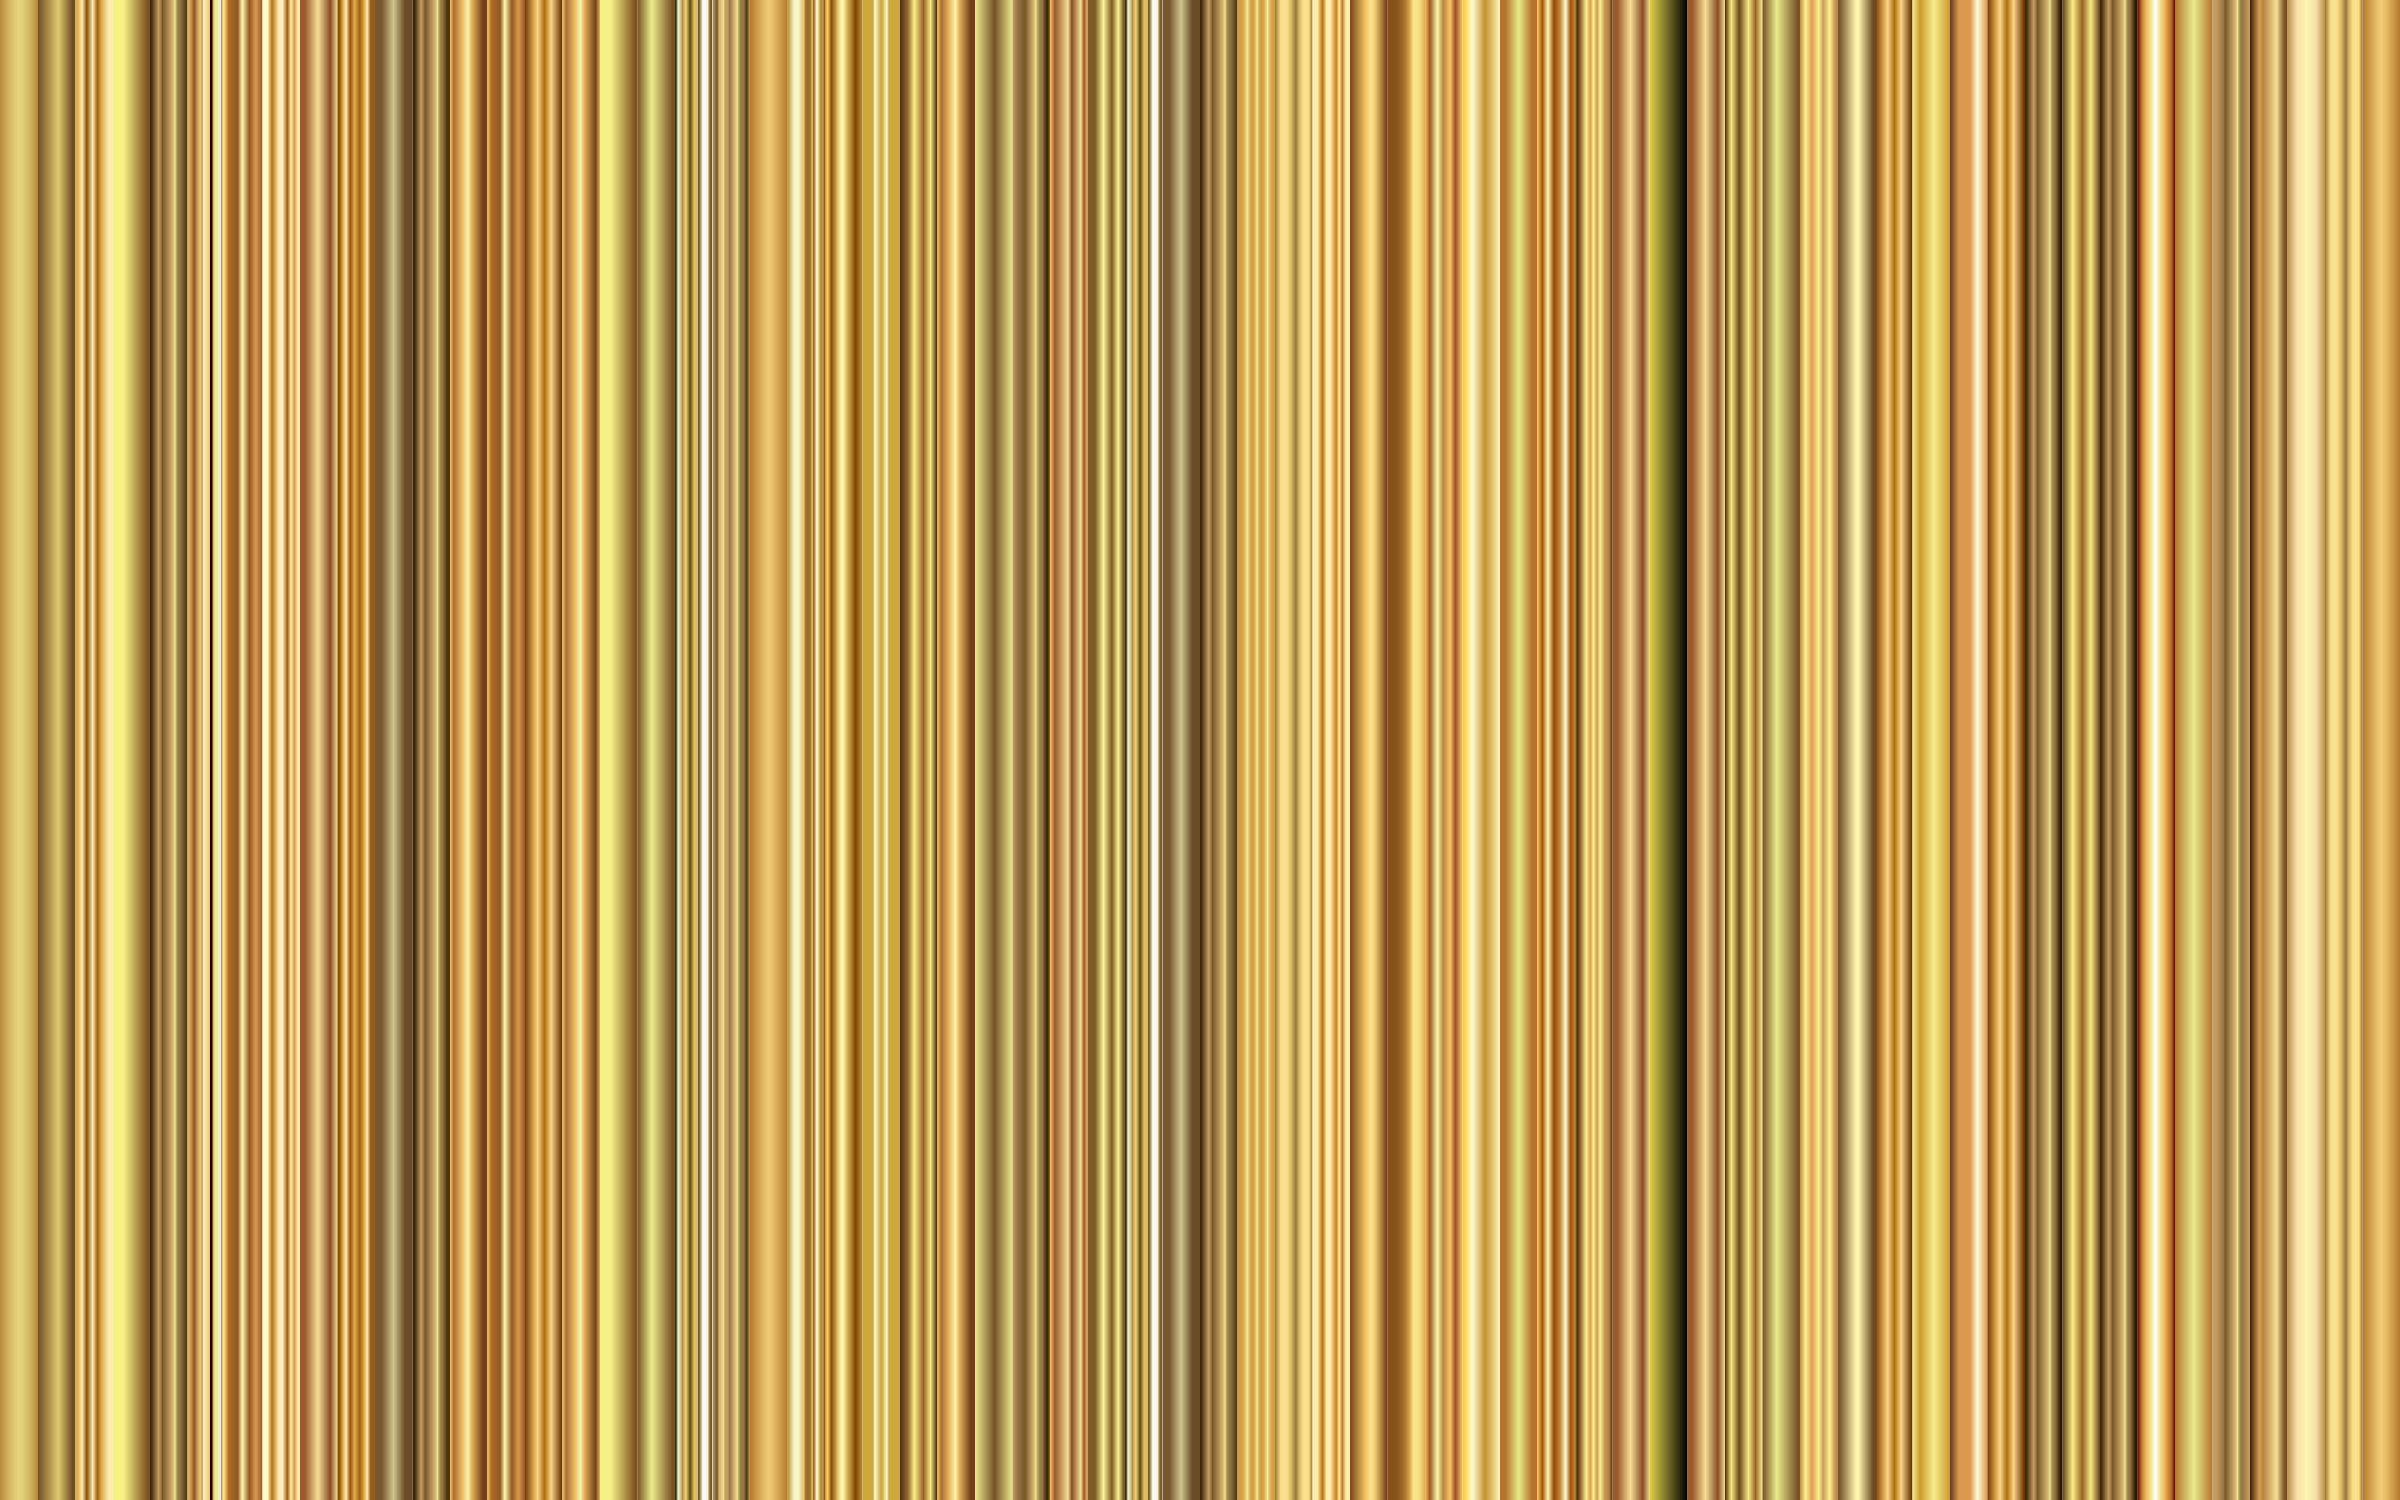 Vibrant Vertical Stripes 14 by GDJ